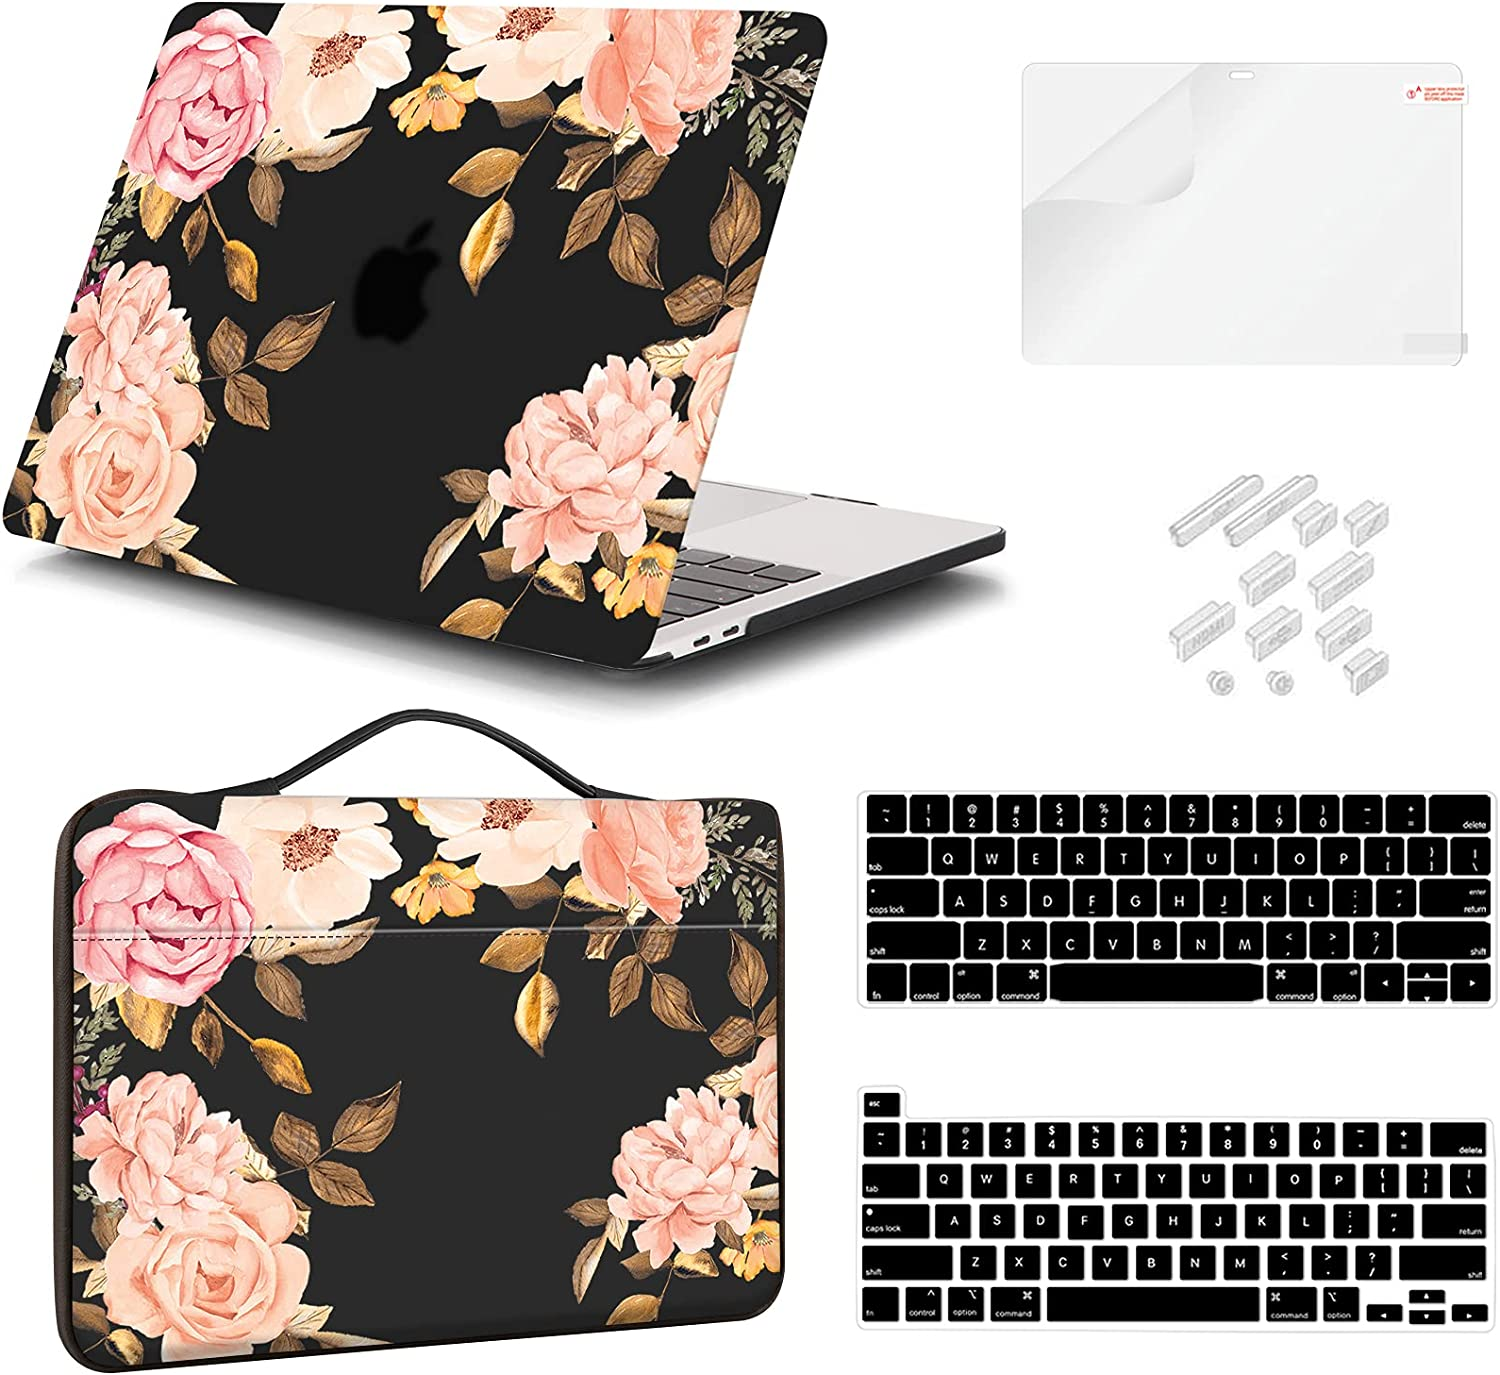 iCasso Case Compatible MacBook Pro 13 Inch Case 2020 2019 2018 2017 A2338 M1/A2251/A2289/A2159/A1989/A1706/A1708, Hard Shell Case, Sleeve Bag, Screen Protector, Keyboard Cover & Dust Plug (Peony)